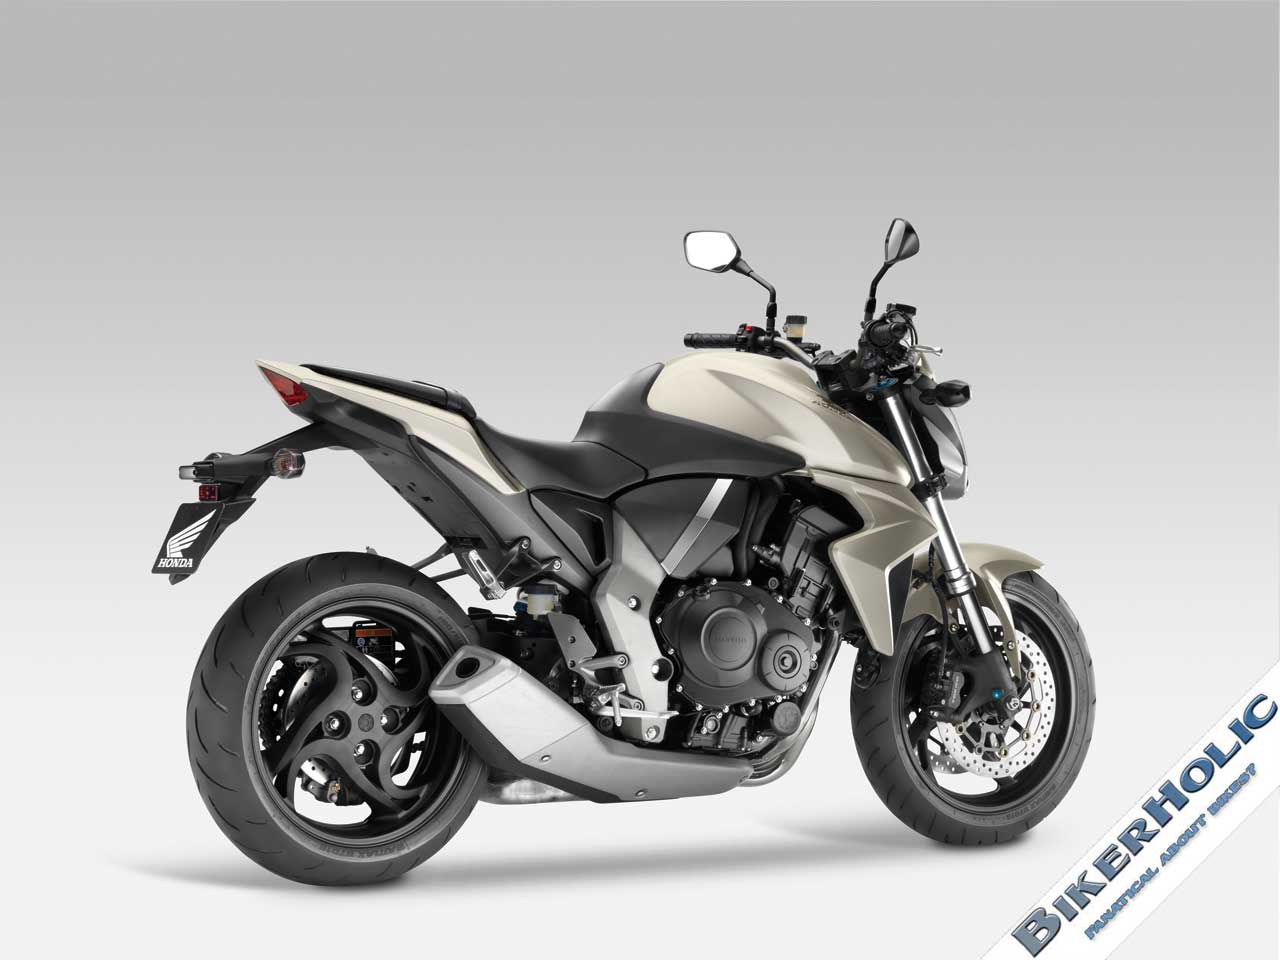 hight resolution of honda honda cbr black white honda image wiring diagram honda honda cb1000r black white honda image